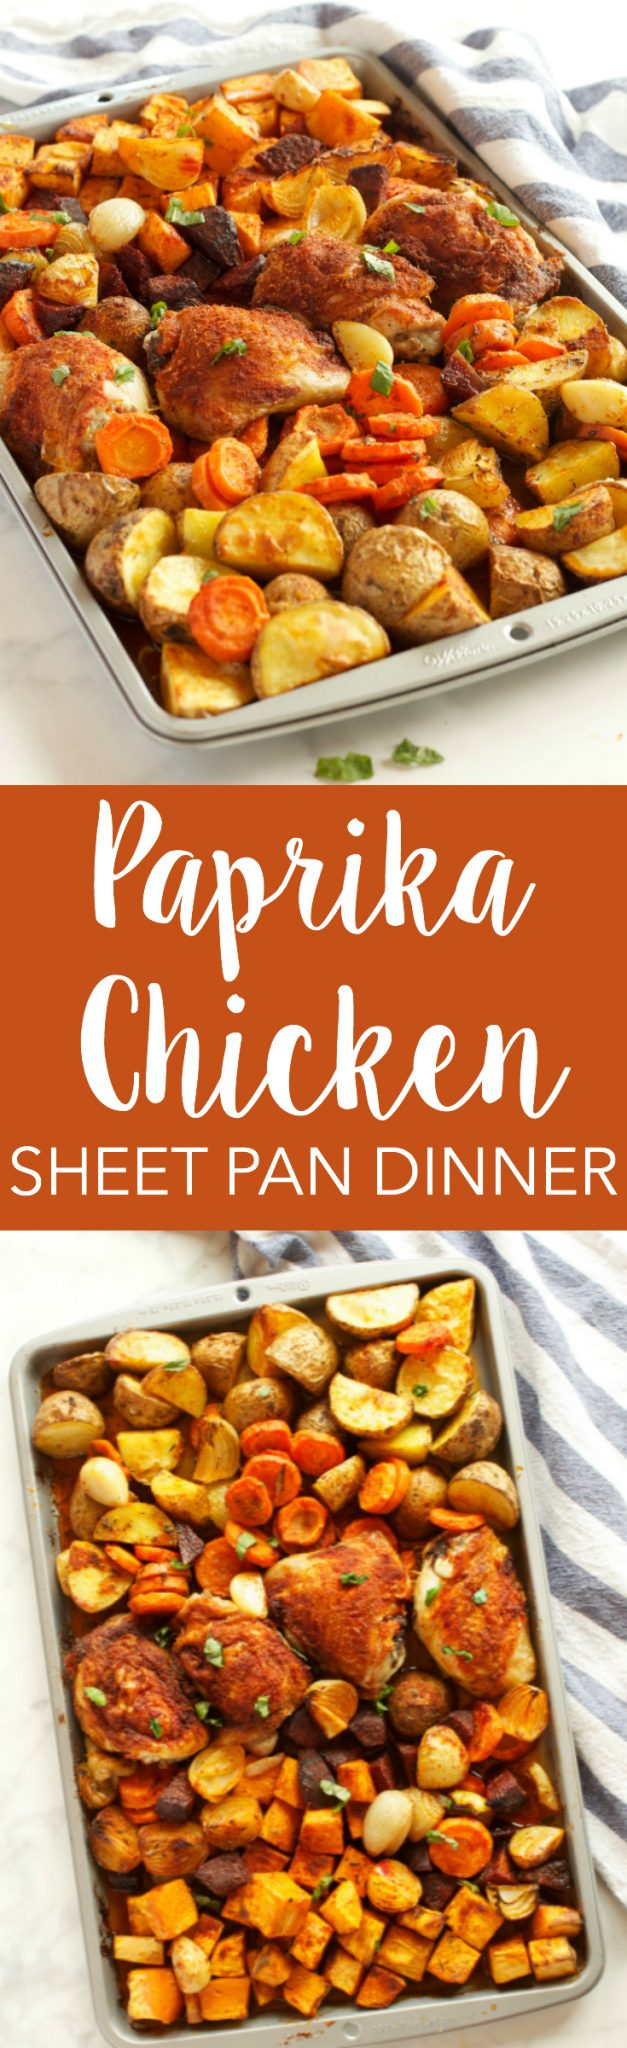 This Paprika Chicken Sheet Pan Dinner is an easy, healthy weeknight meal for the whole family that's on the table in 30 minutes or less! Recipe from thebusybaker.ca! via @busybakerblog